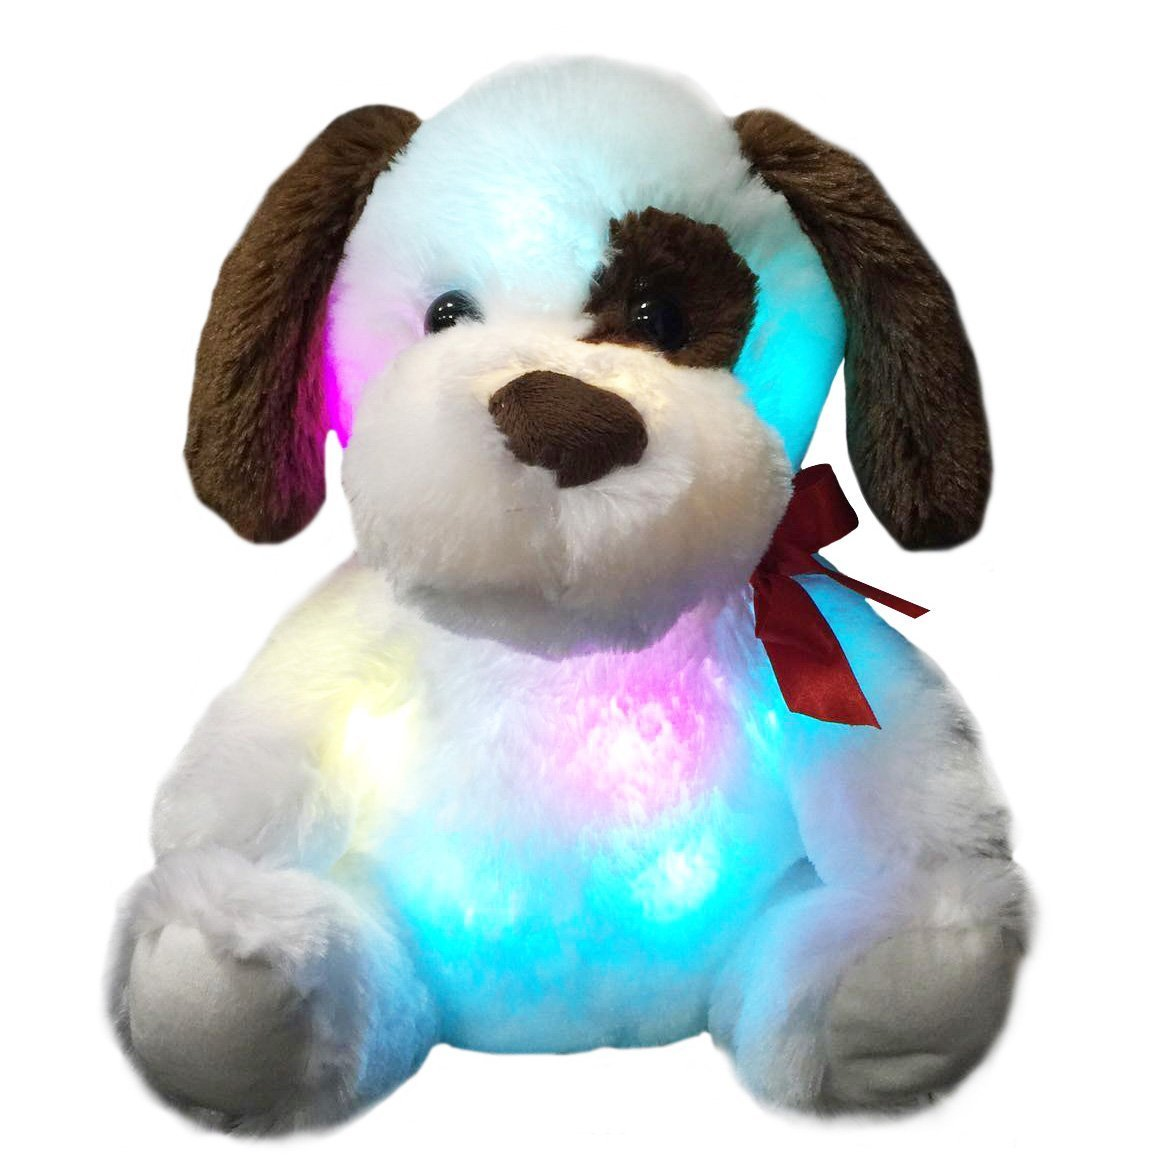 light up stuffed dog, 12 Inch | Bstaofy - Glow Guards